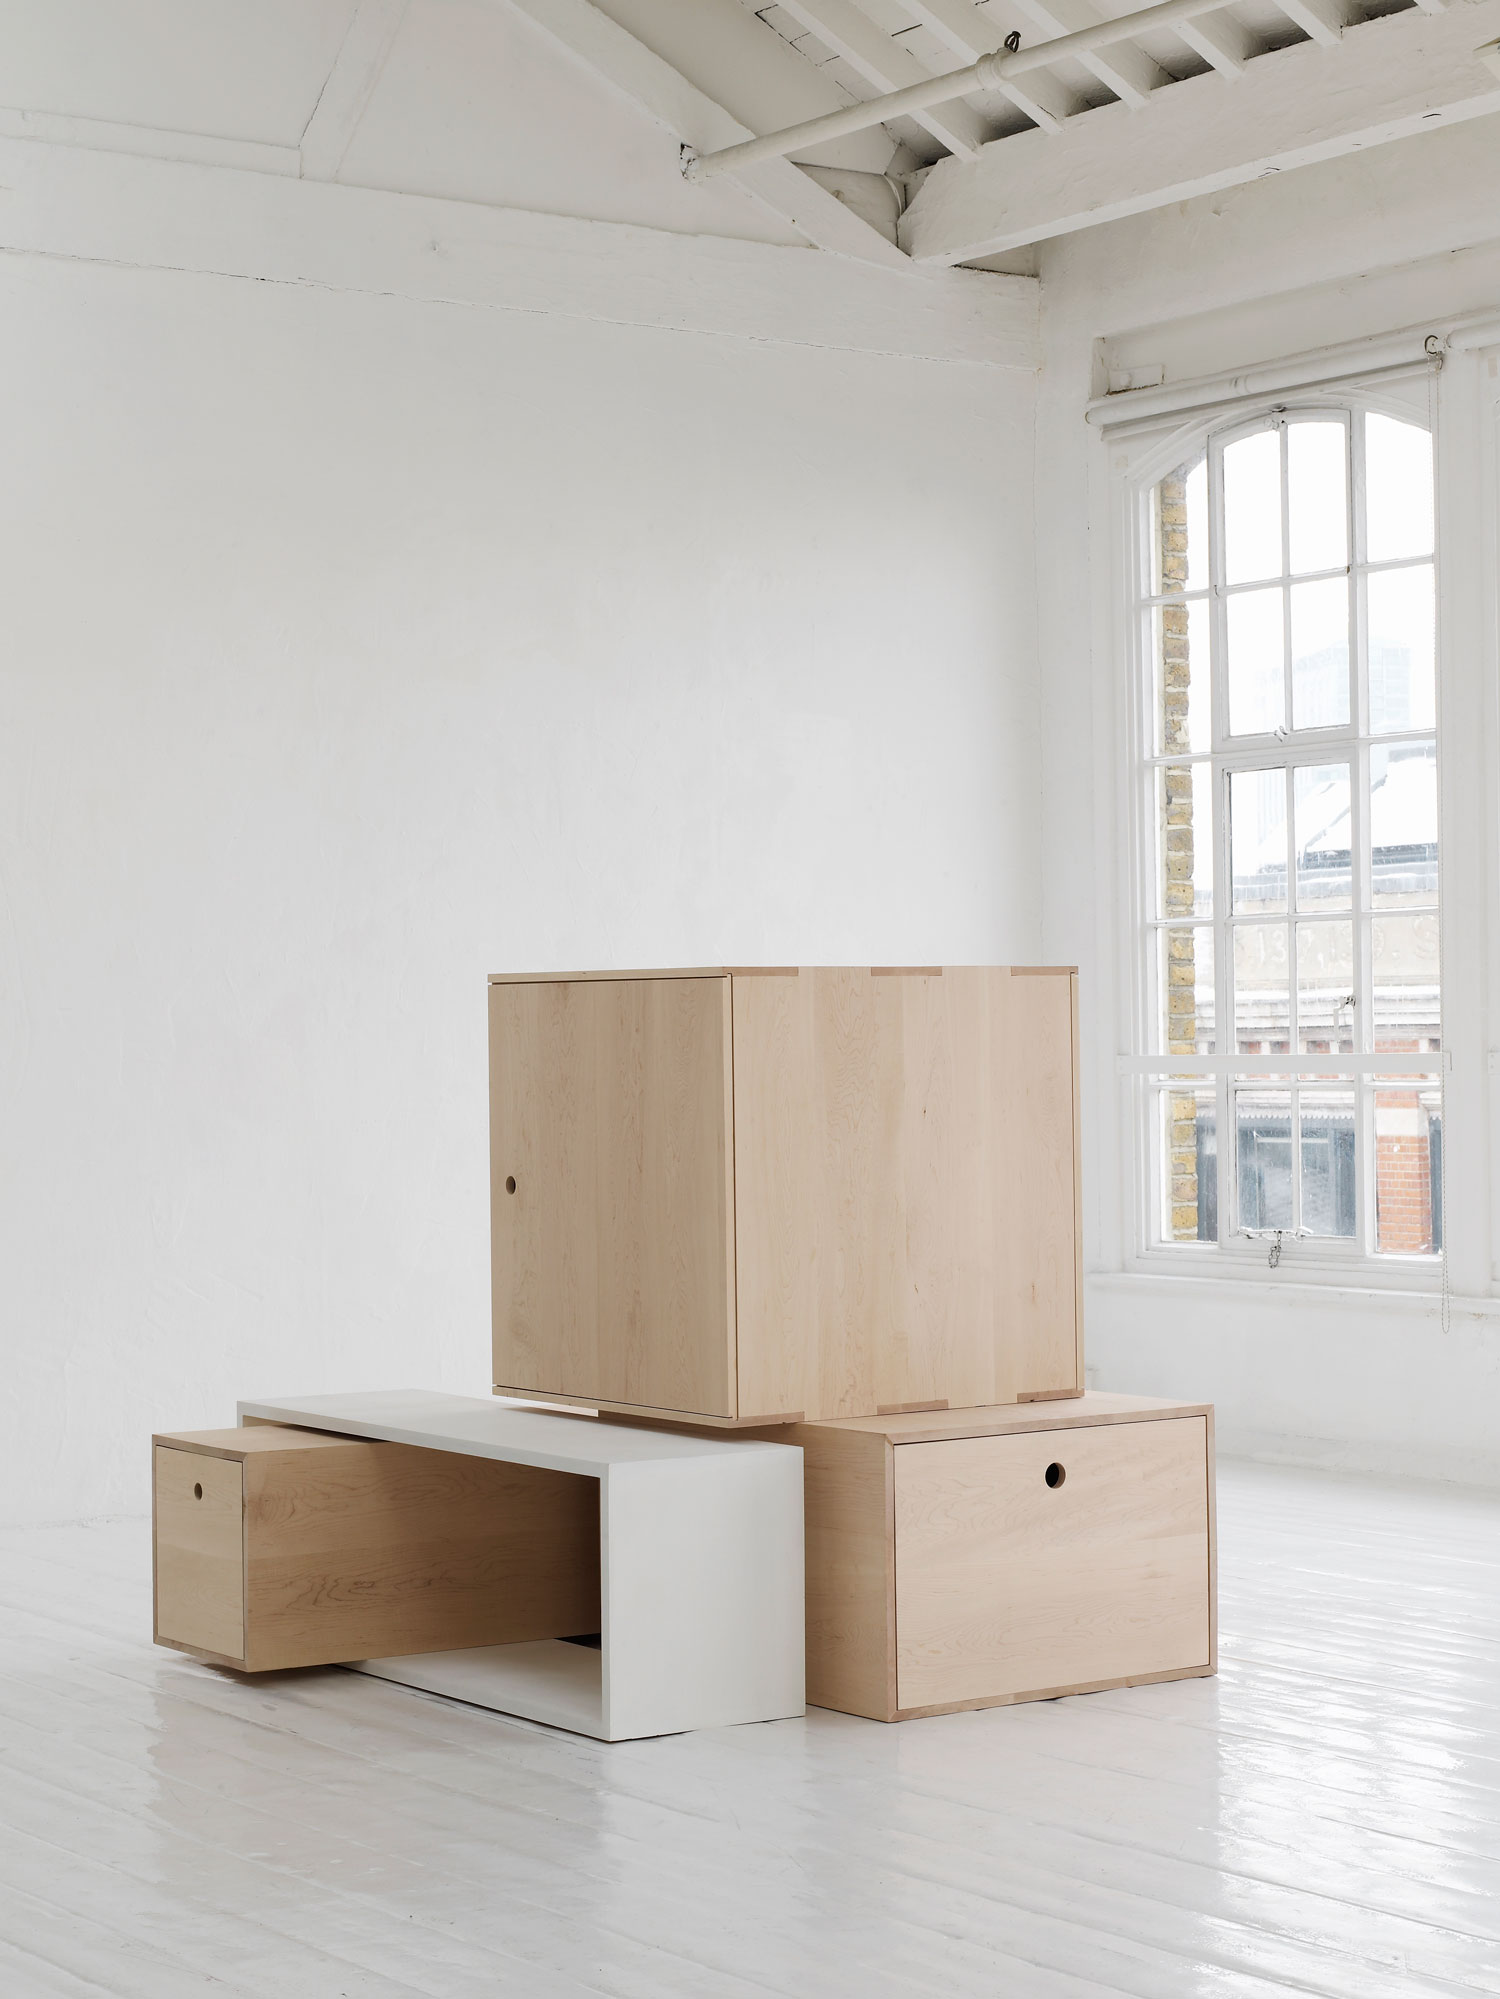 11 Boxes by Studio Vit | Yellowtrace